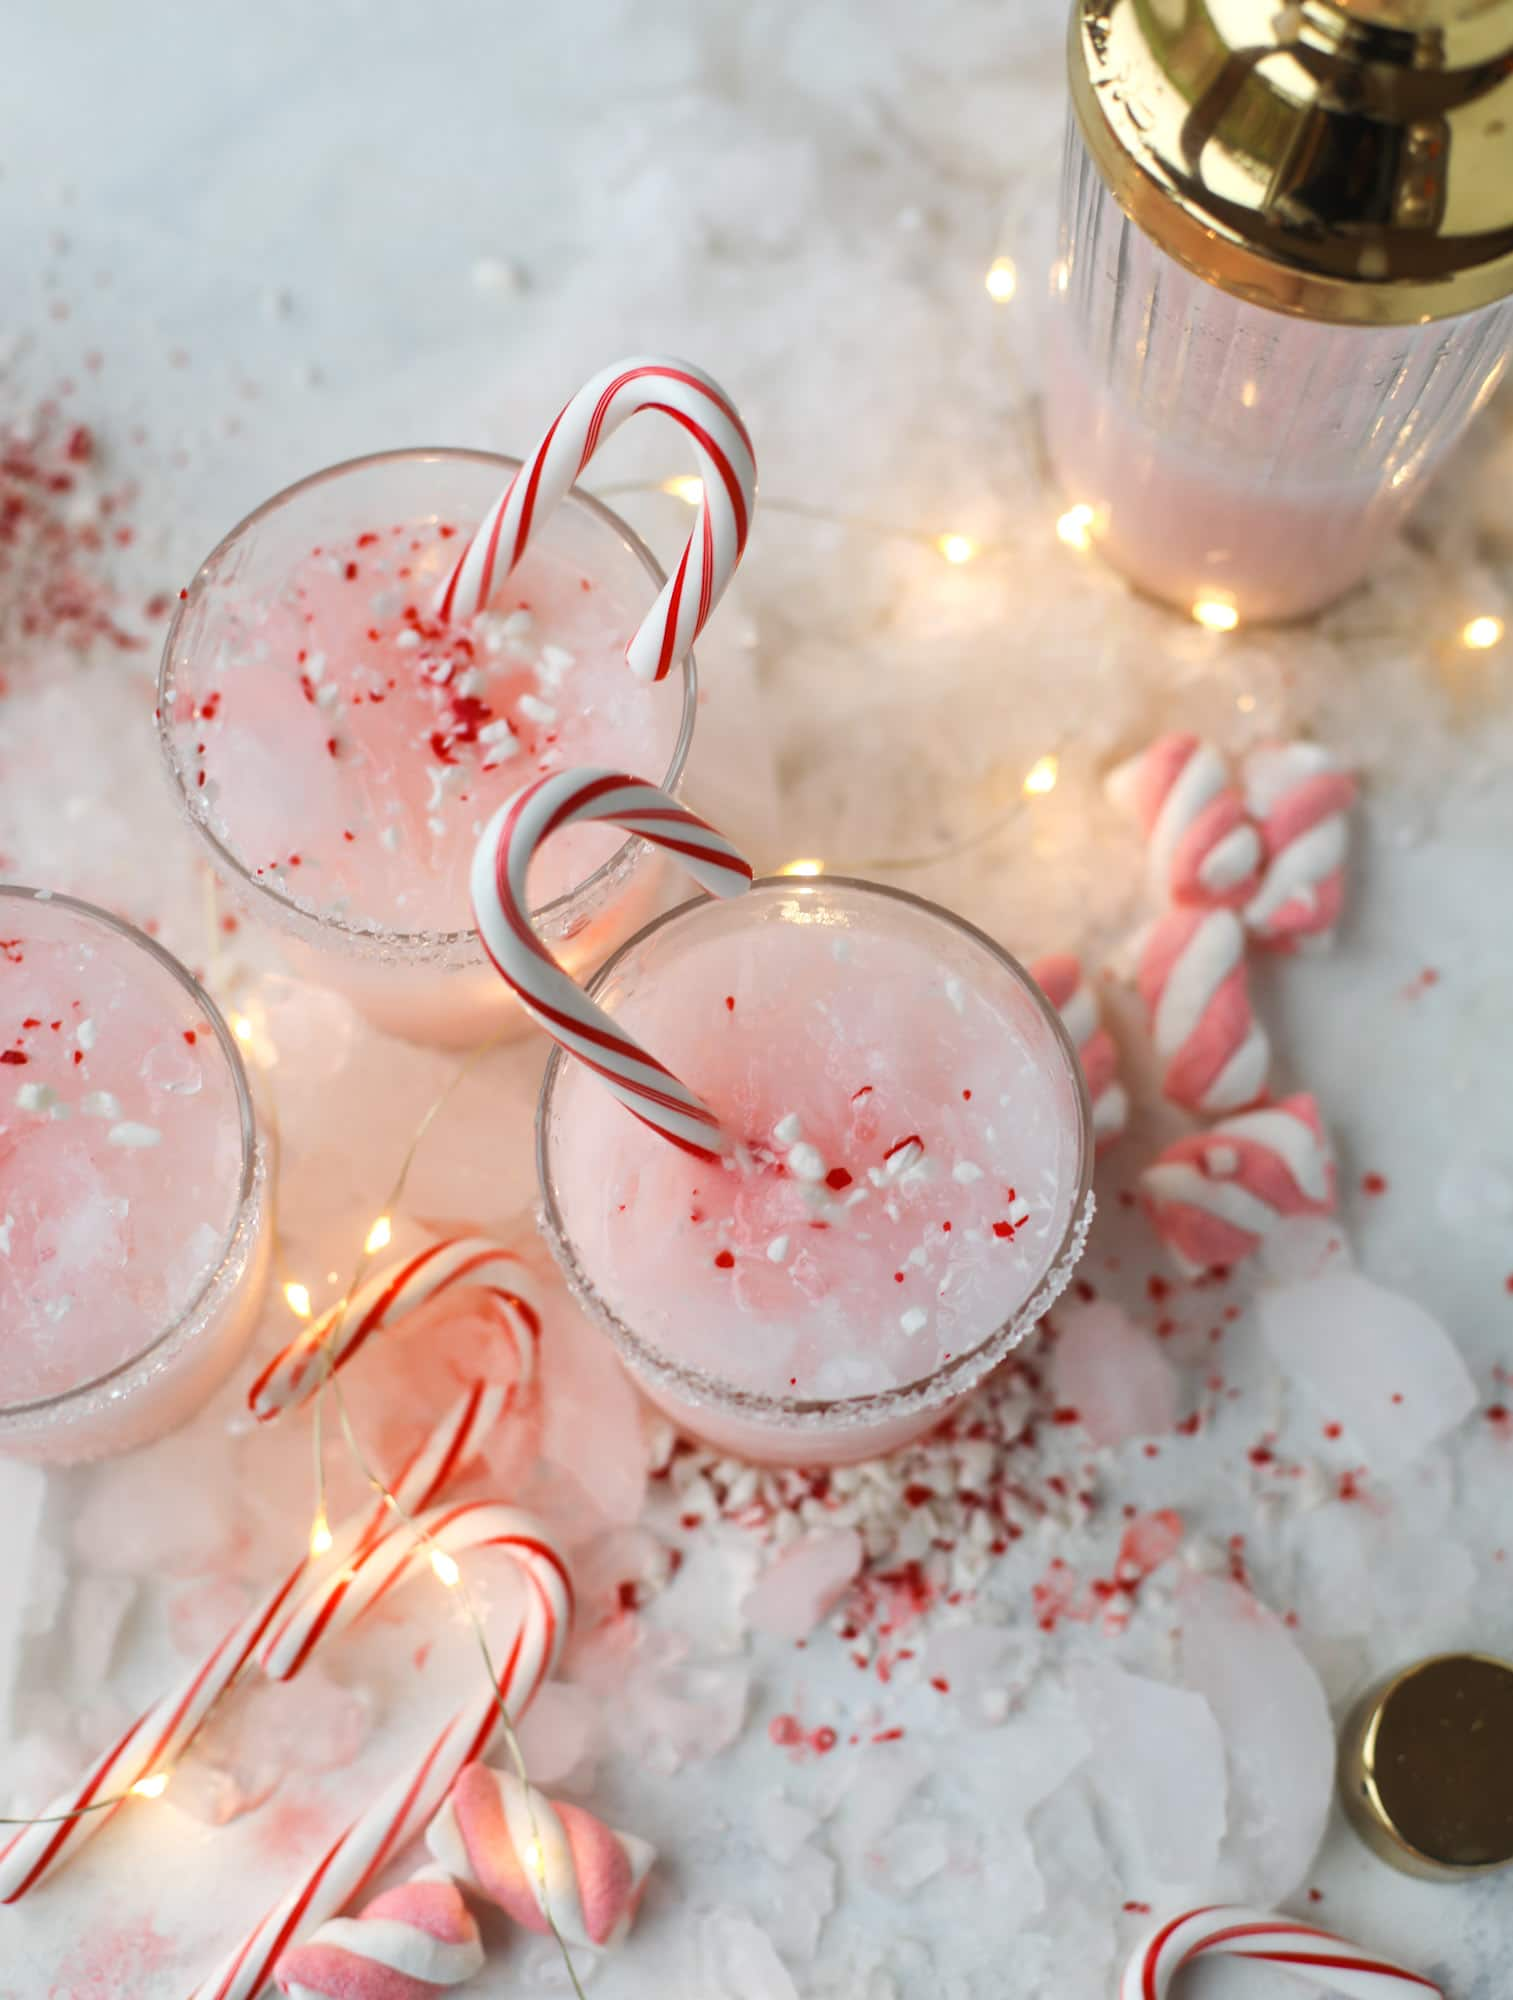 This pink peppermint cocktail is full of holiday cheer! Candy cane vodka, creme de cacao, vanilla and a drop of cream come together to create the perfect iced holiday drink that tastes like a treat! I howsweeteats.com #pinkpeppermint #cocktail